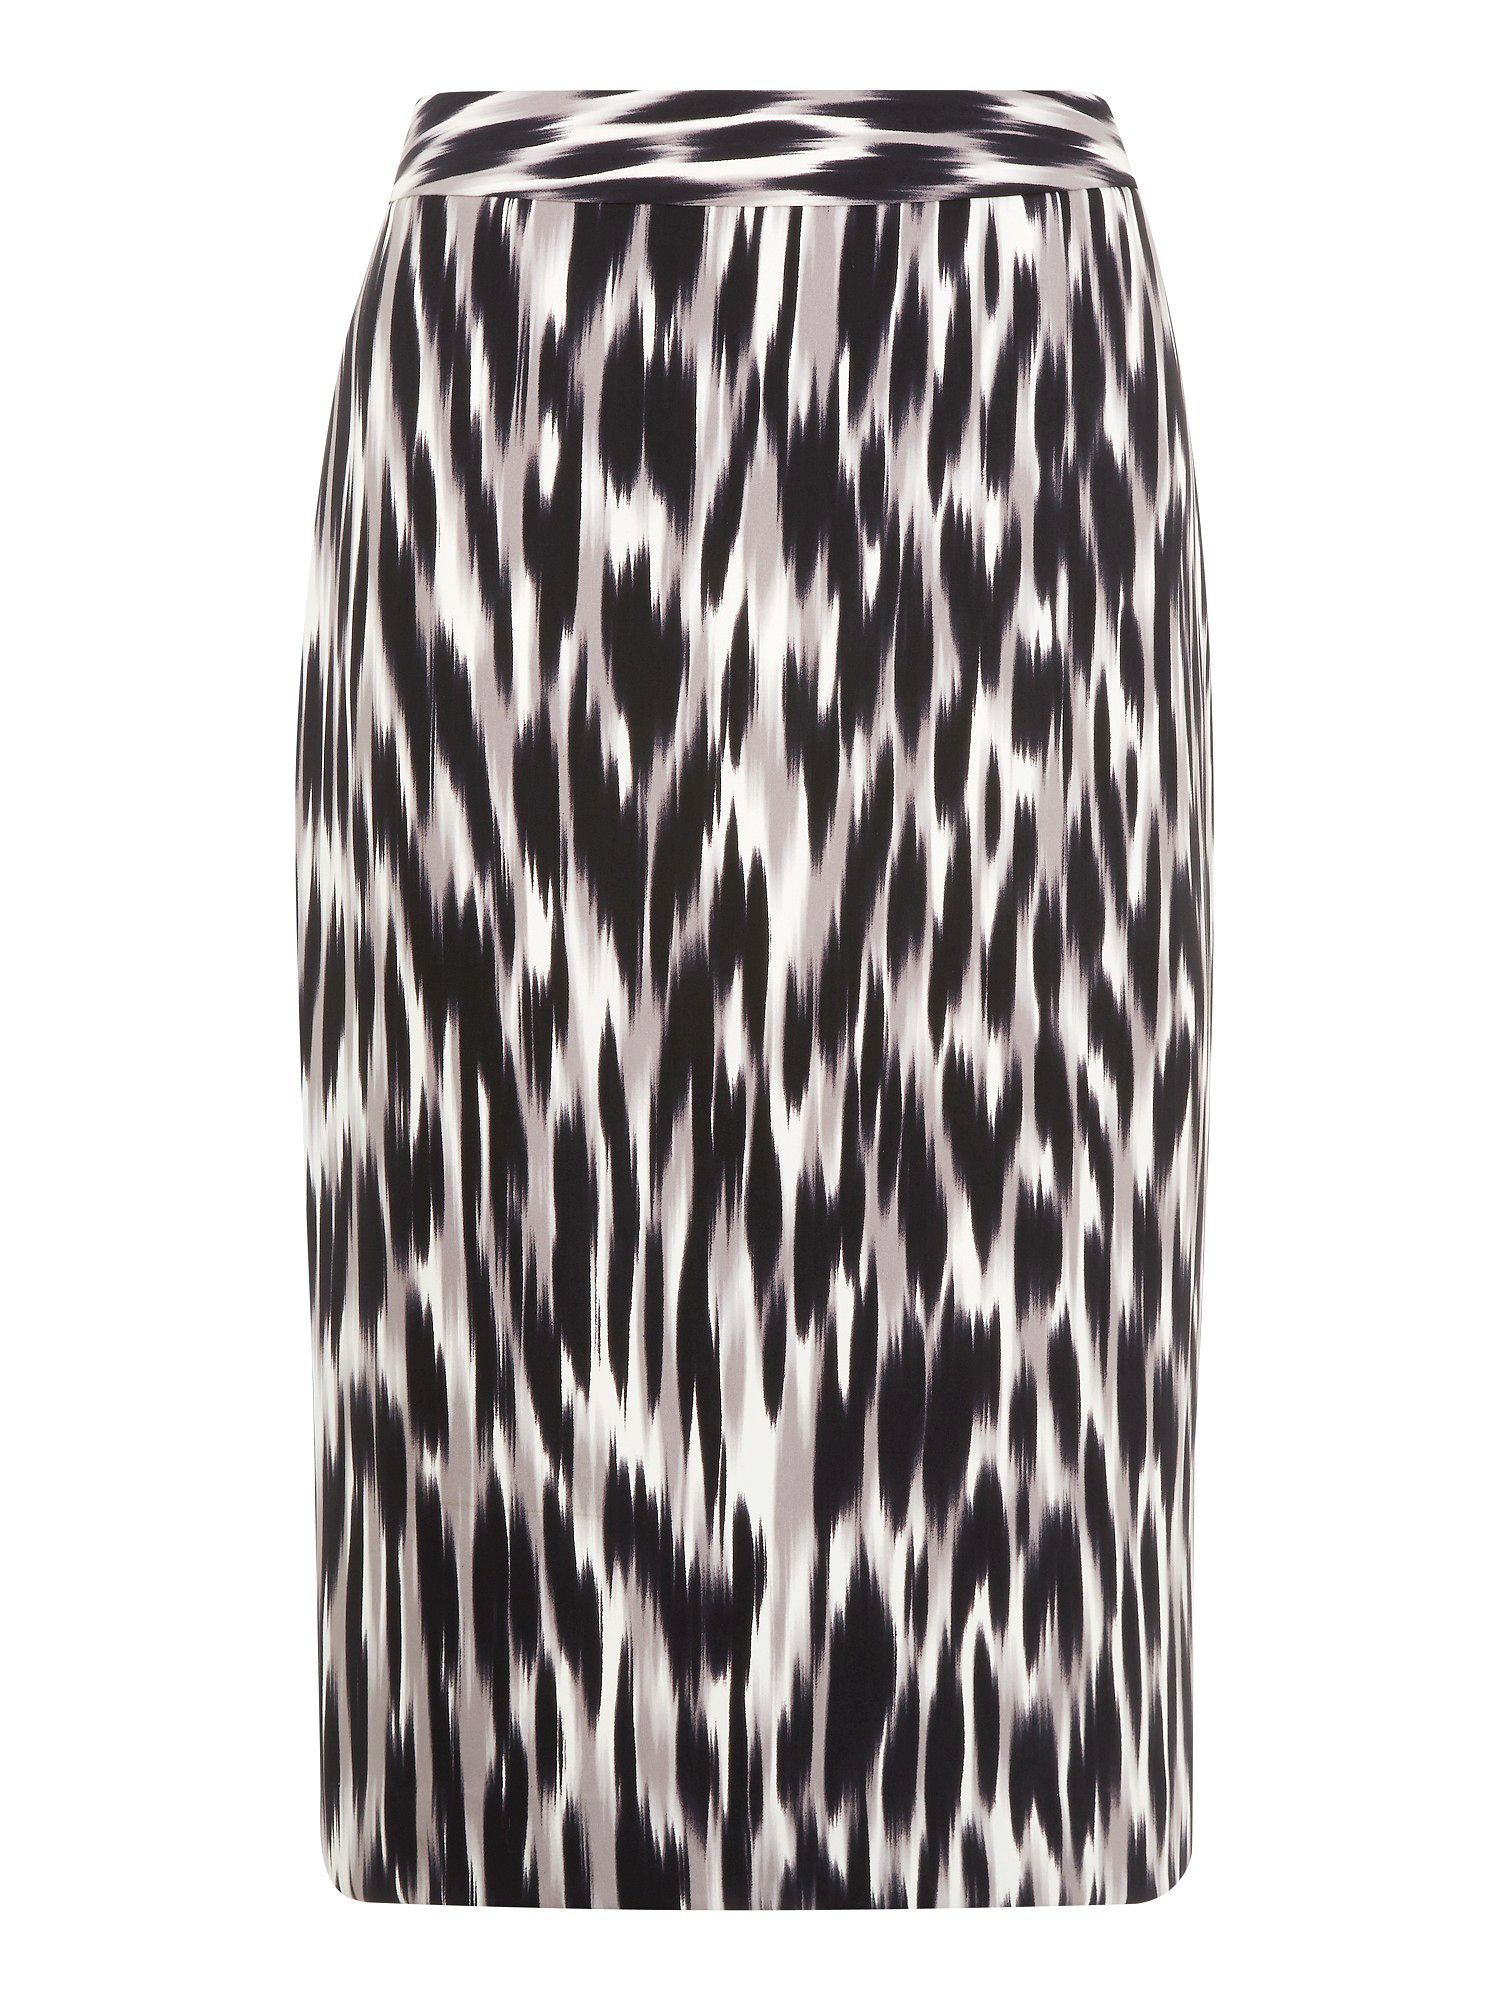 Hazy animal print pencil skirt